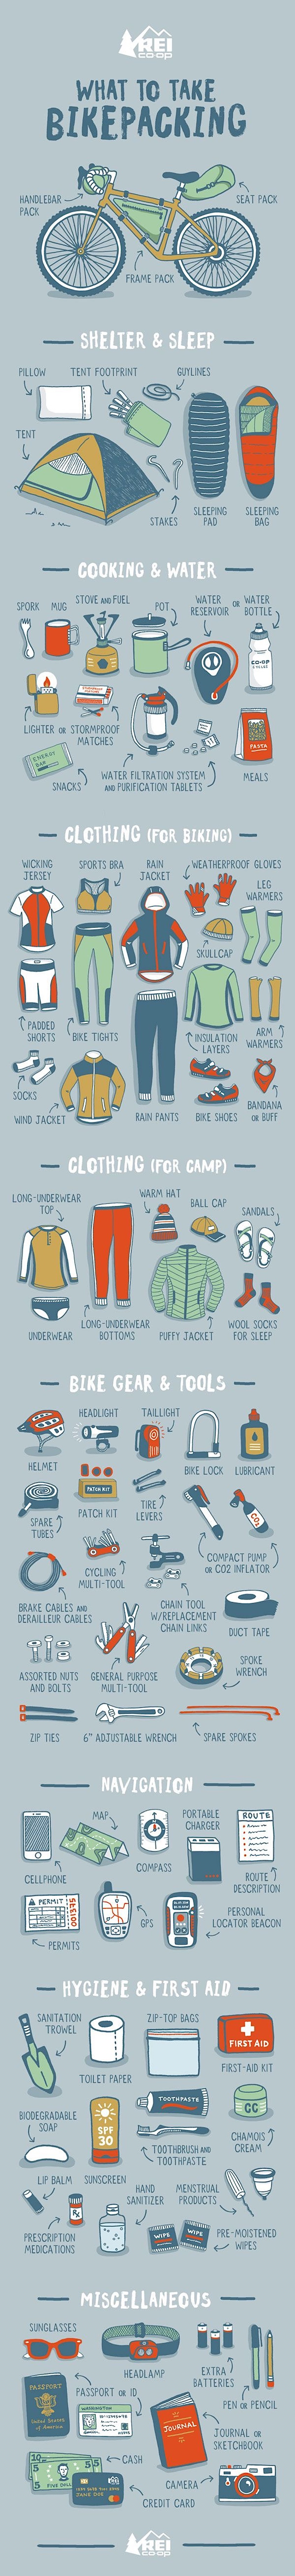 What to Take Bikepacking. Infografica by Emily Irelan